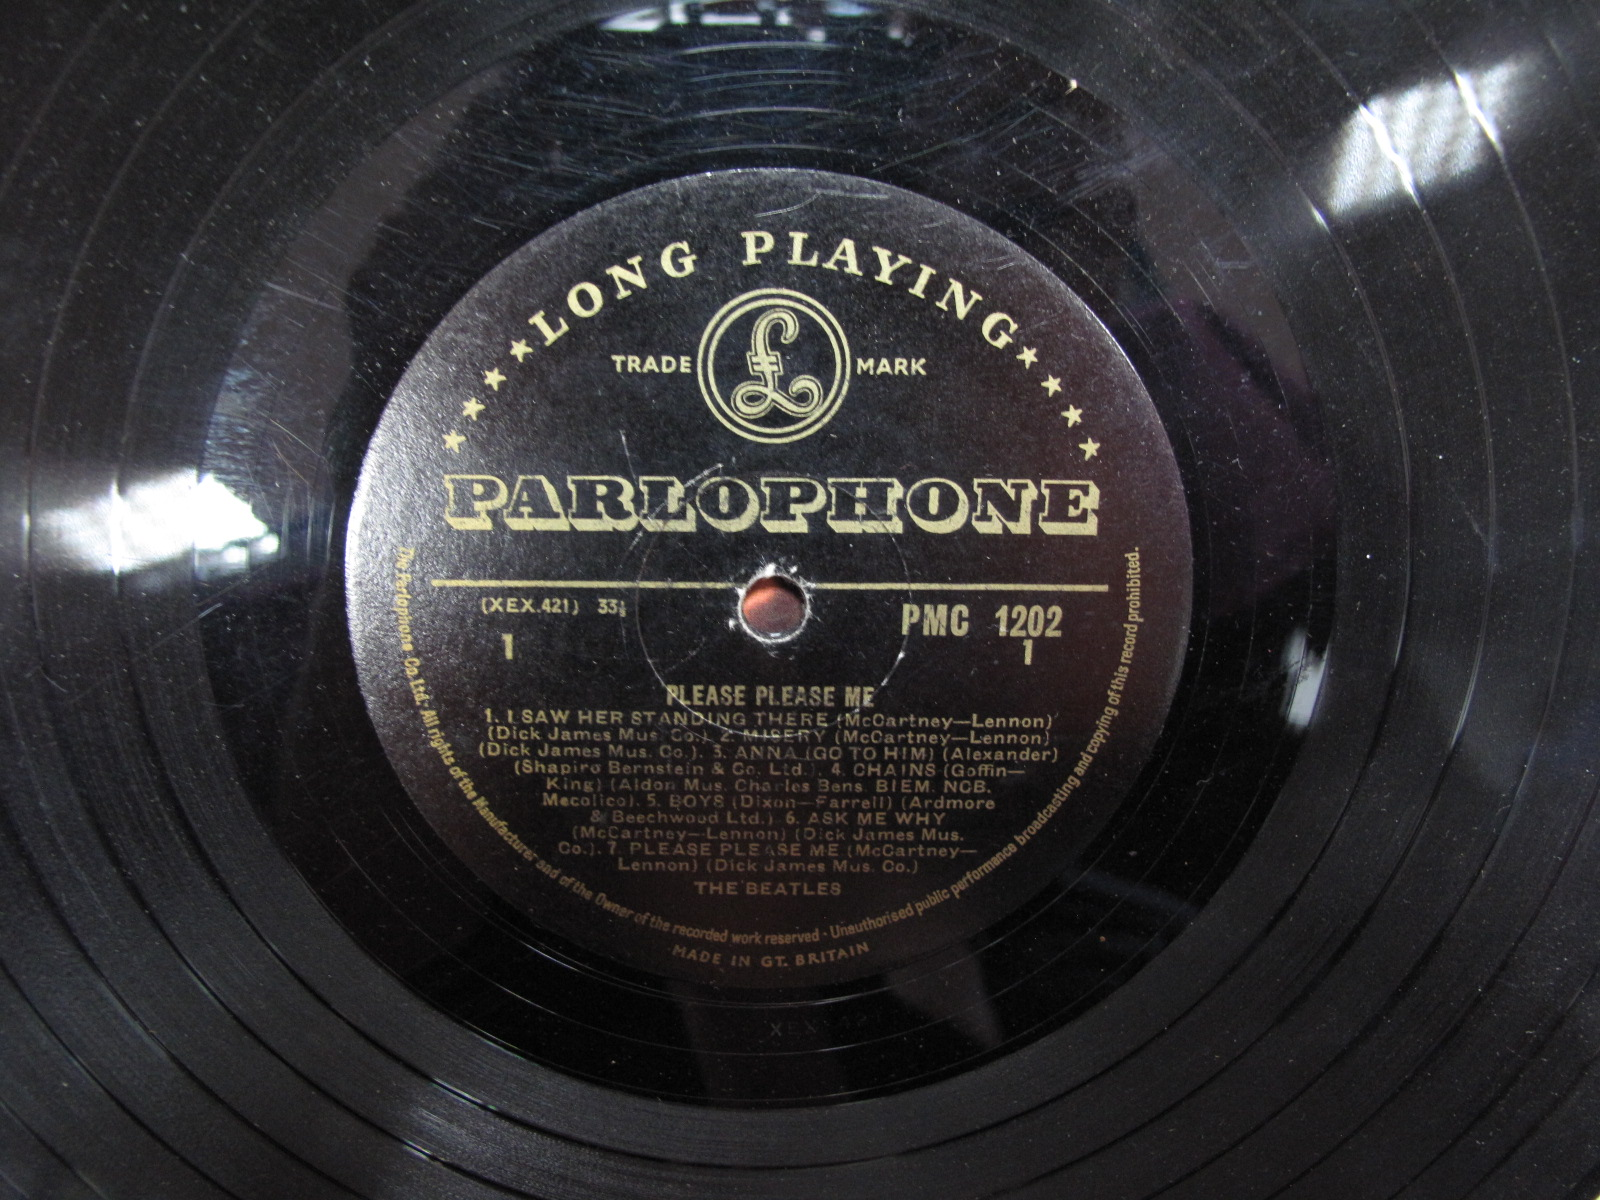 Lot 746 - The Beatles: Please Please Me LP, the rare black/gold Parlophone label, mono PMC 1202, Parlophone